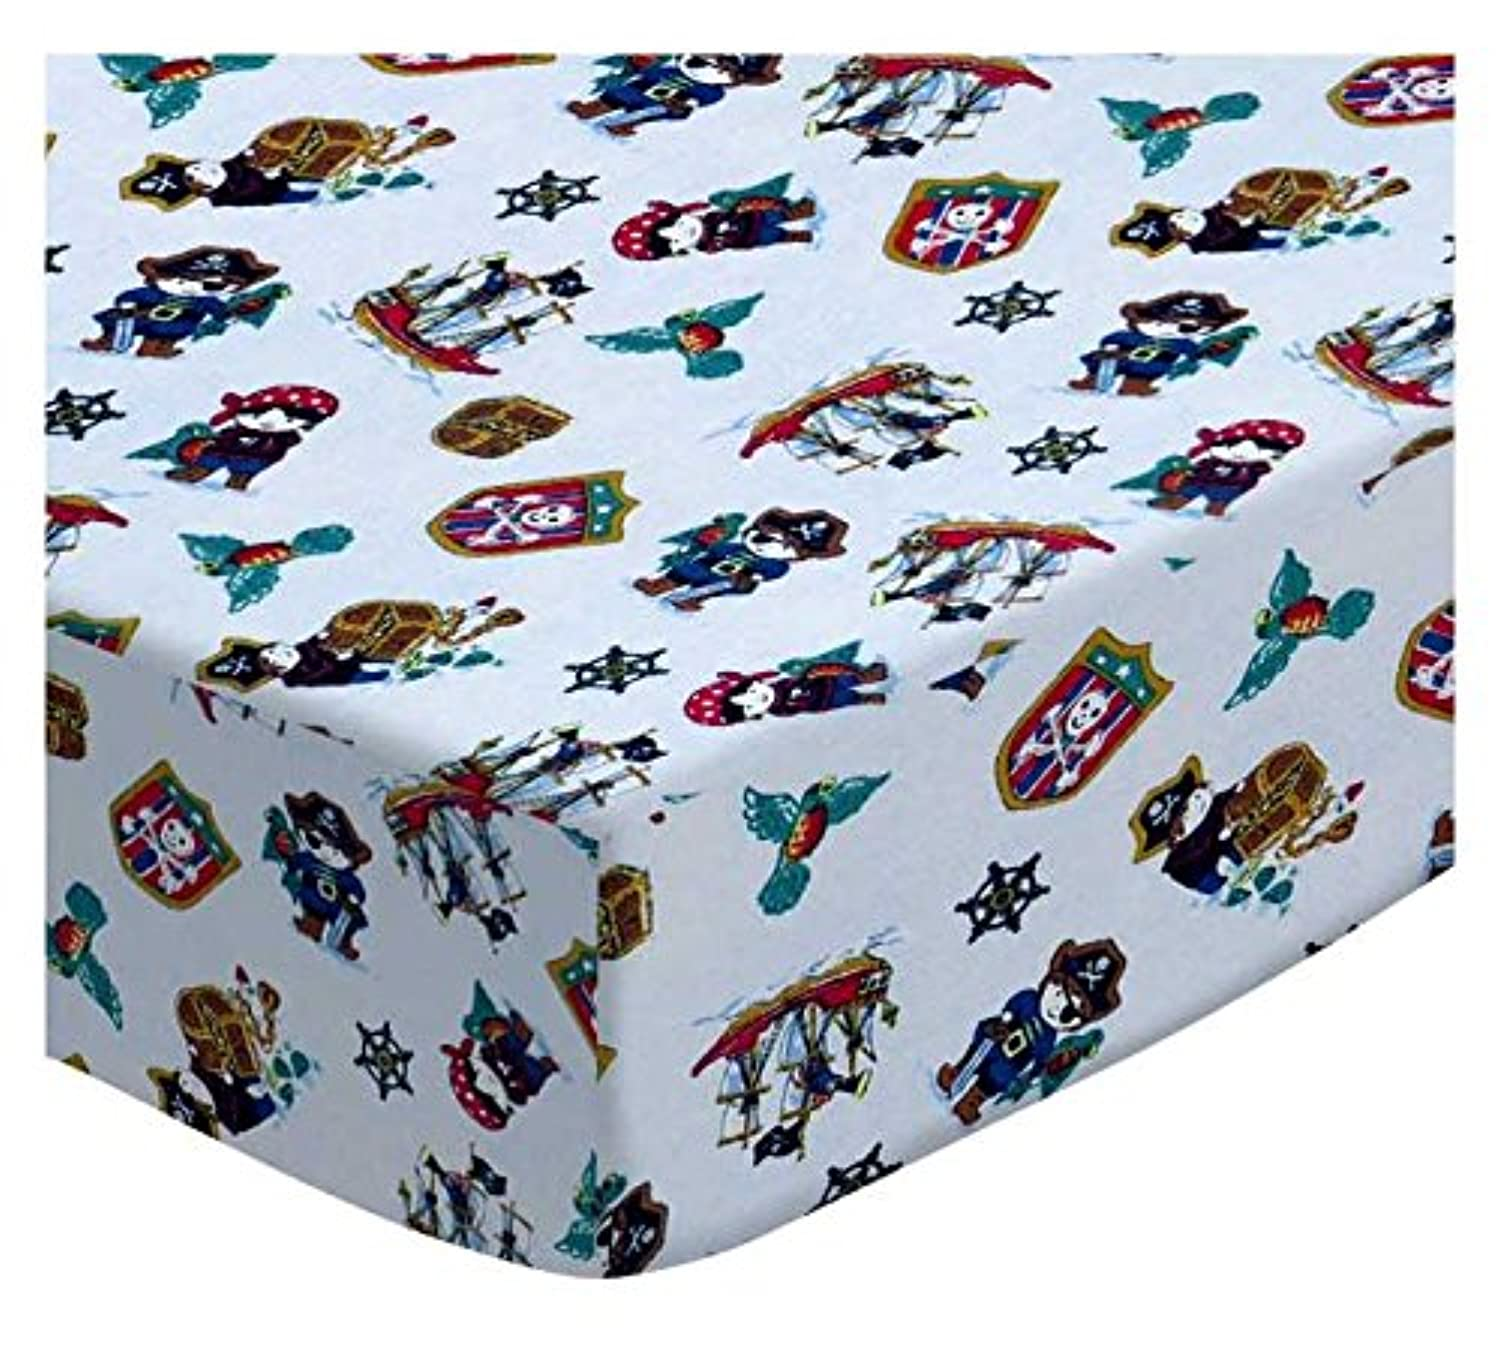 SheetWorld Fitted Square Playard Sheet 37.5 x 37.5 (Fits Joovy) - Pirates - Made In USA by sheetworld